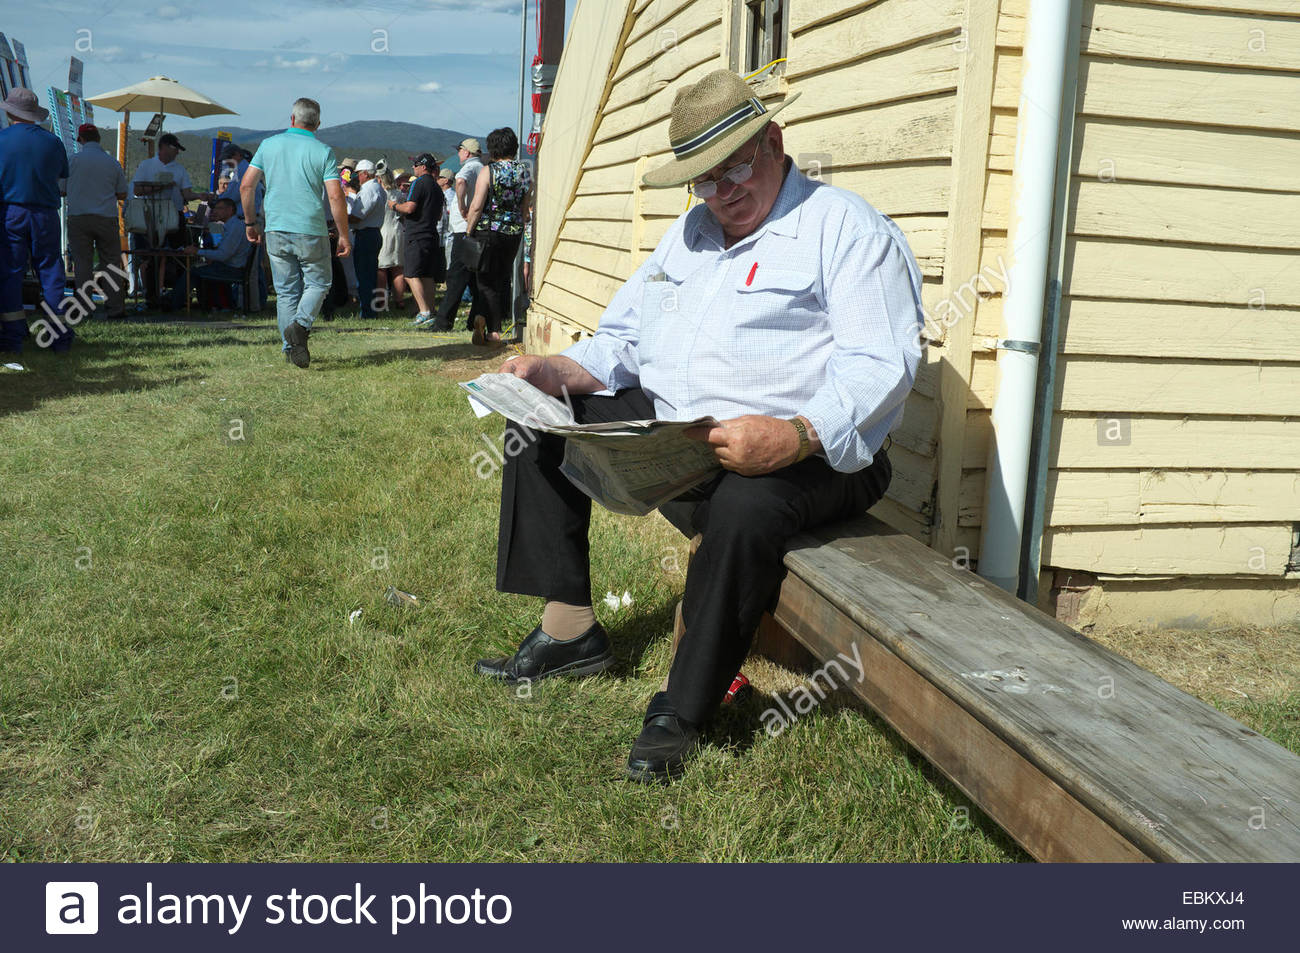 Mature man reads the racing paper at the Adaminaby Races (horse racing), in the Snowy Mountains, NSW, Australia. - Stock Image